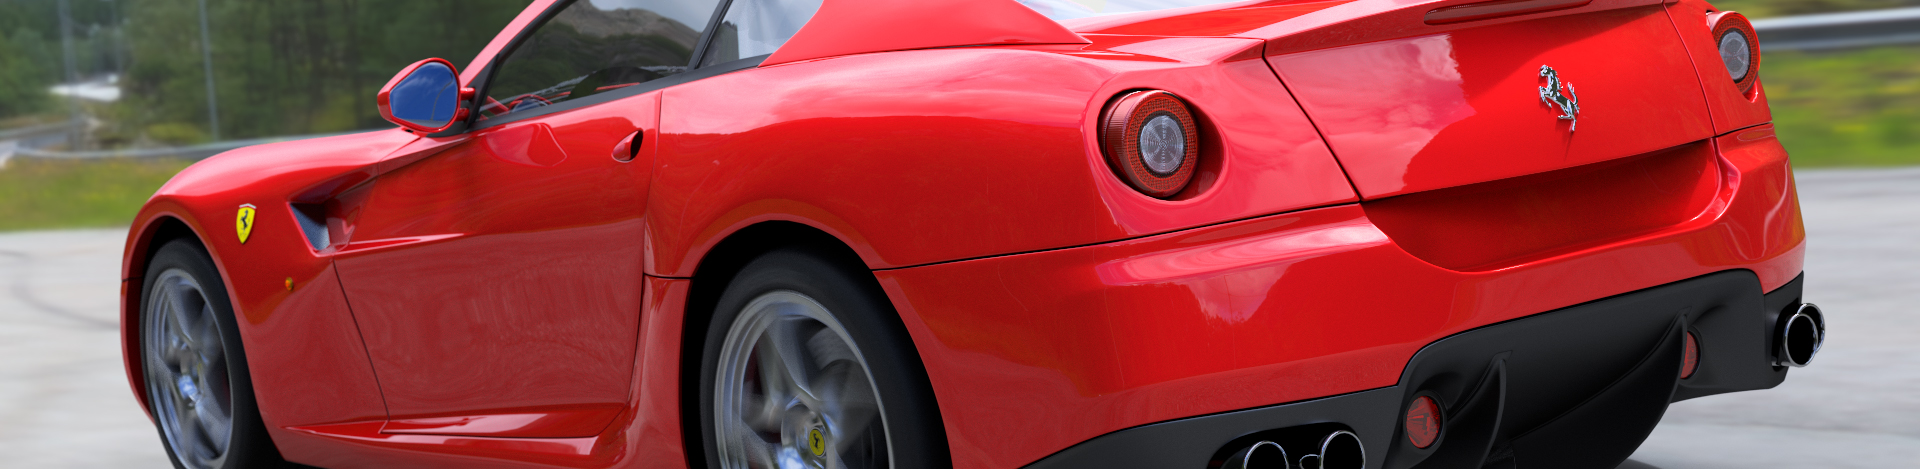 slideshow_ferrar_rear